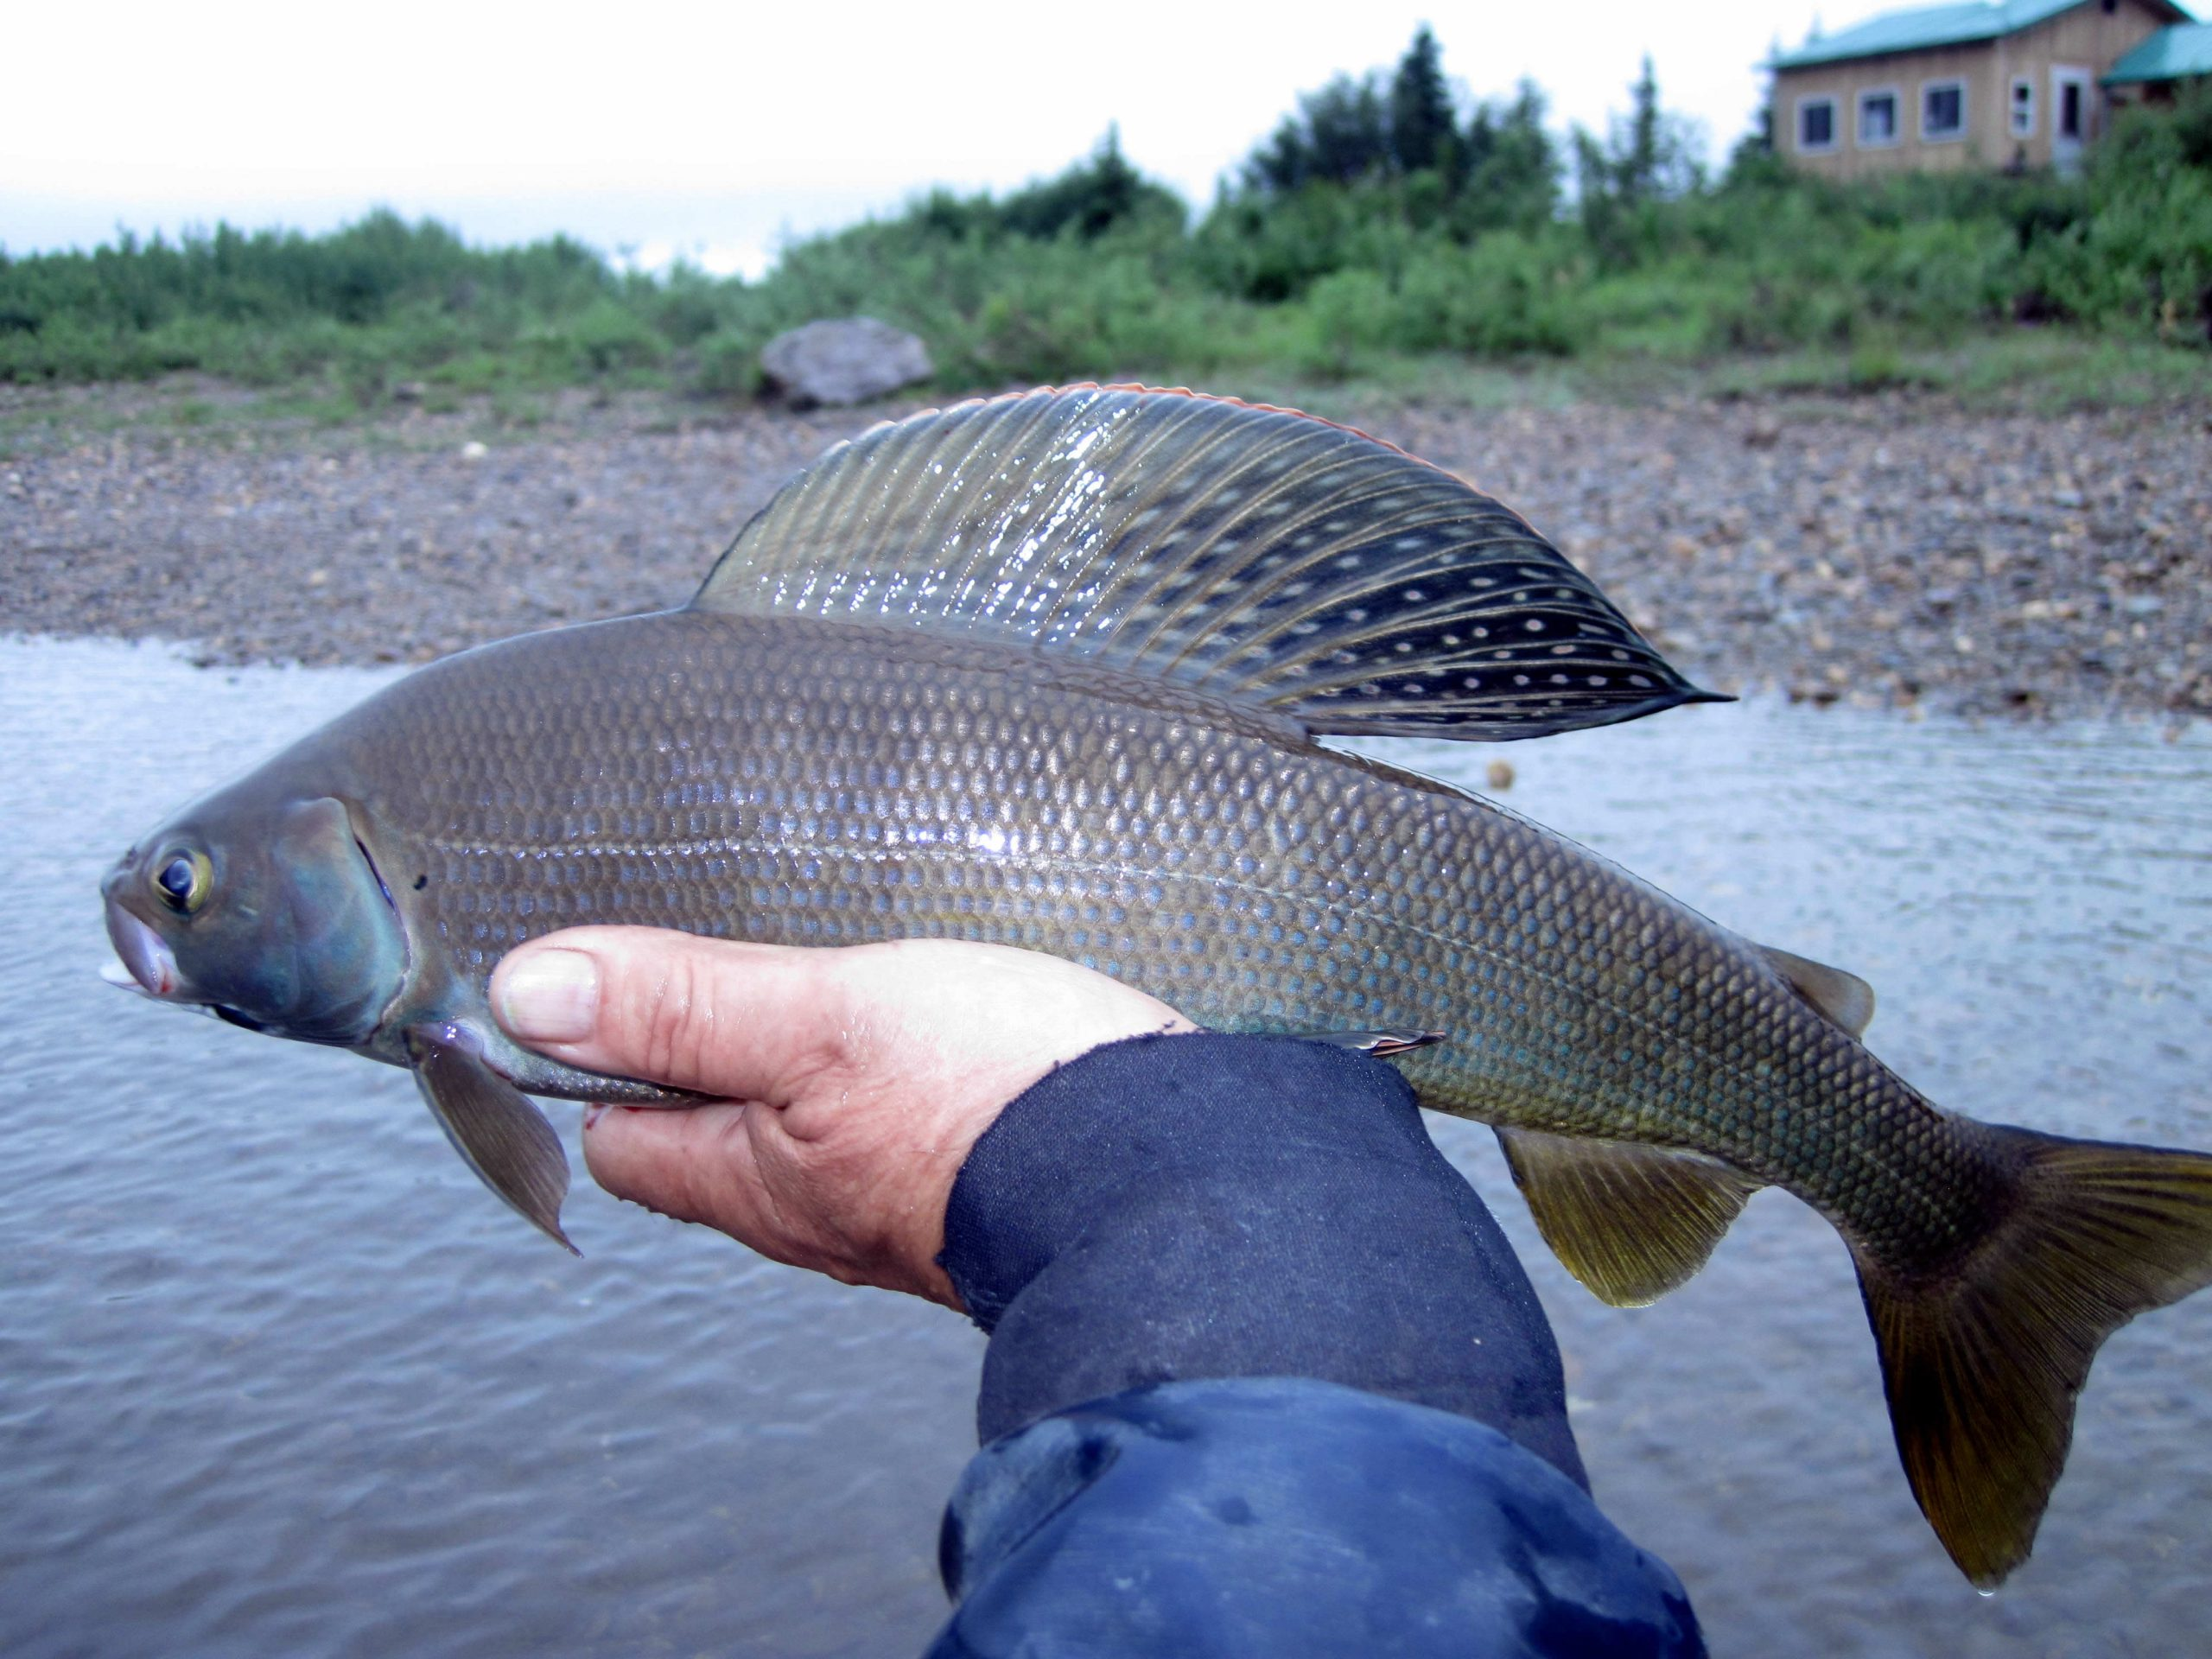 Grayling fish on Alskan River